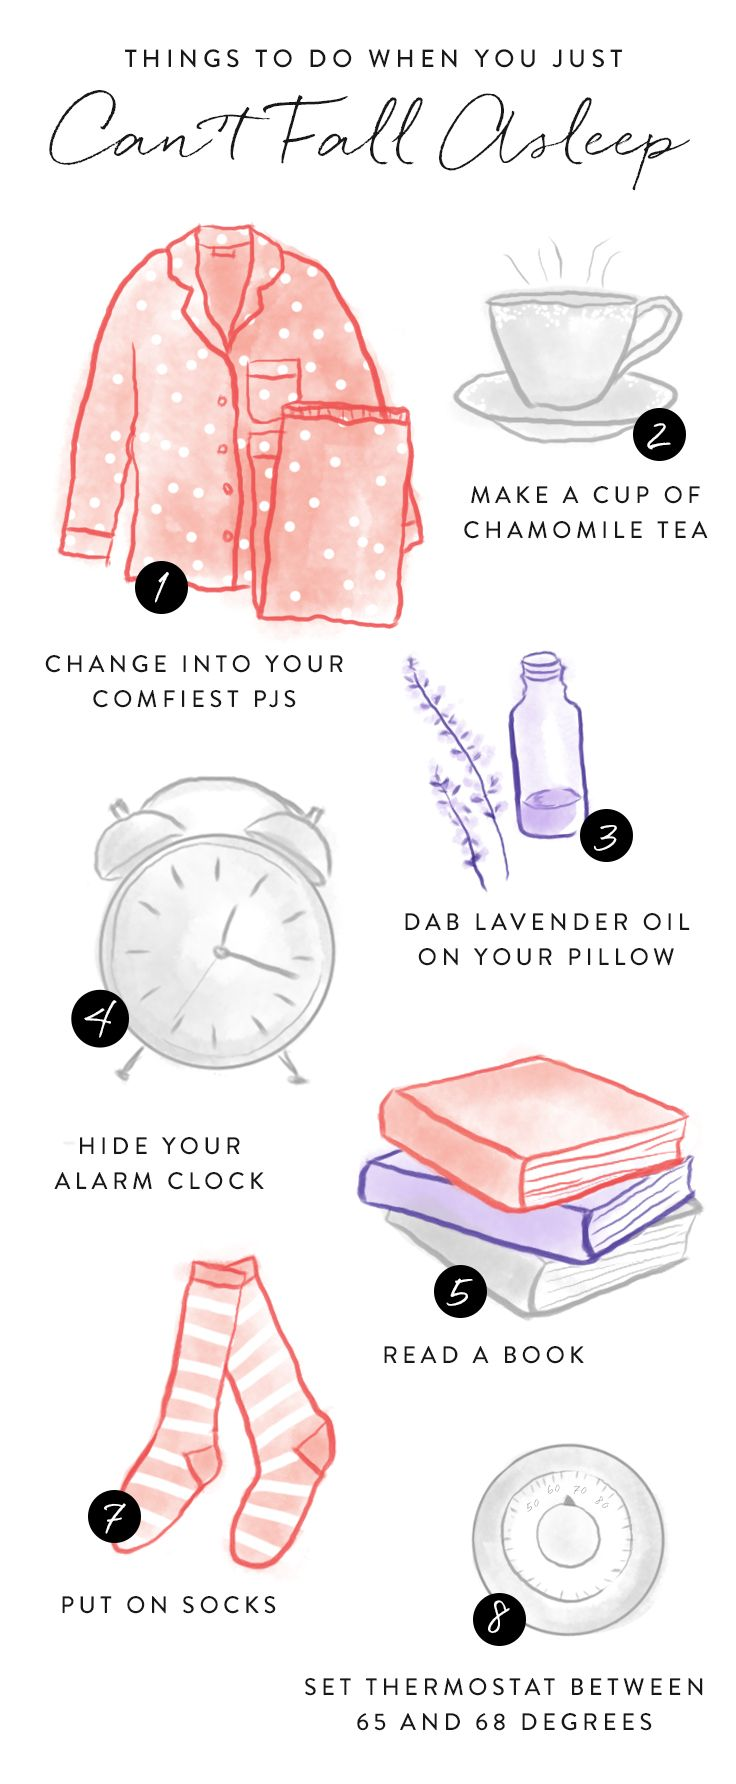 27 Soothing Things To Do When You Just Can't Fall Asleep How